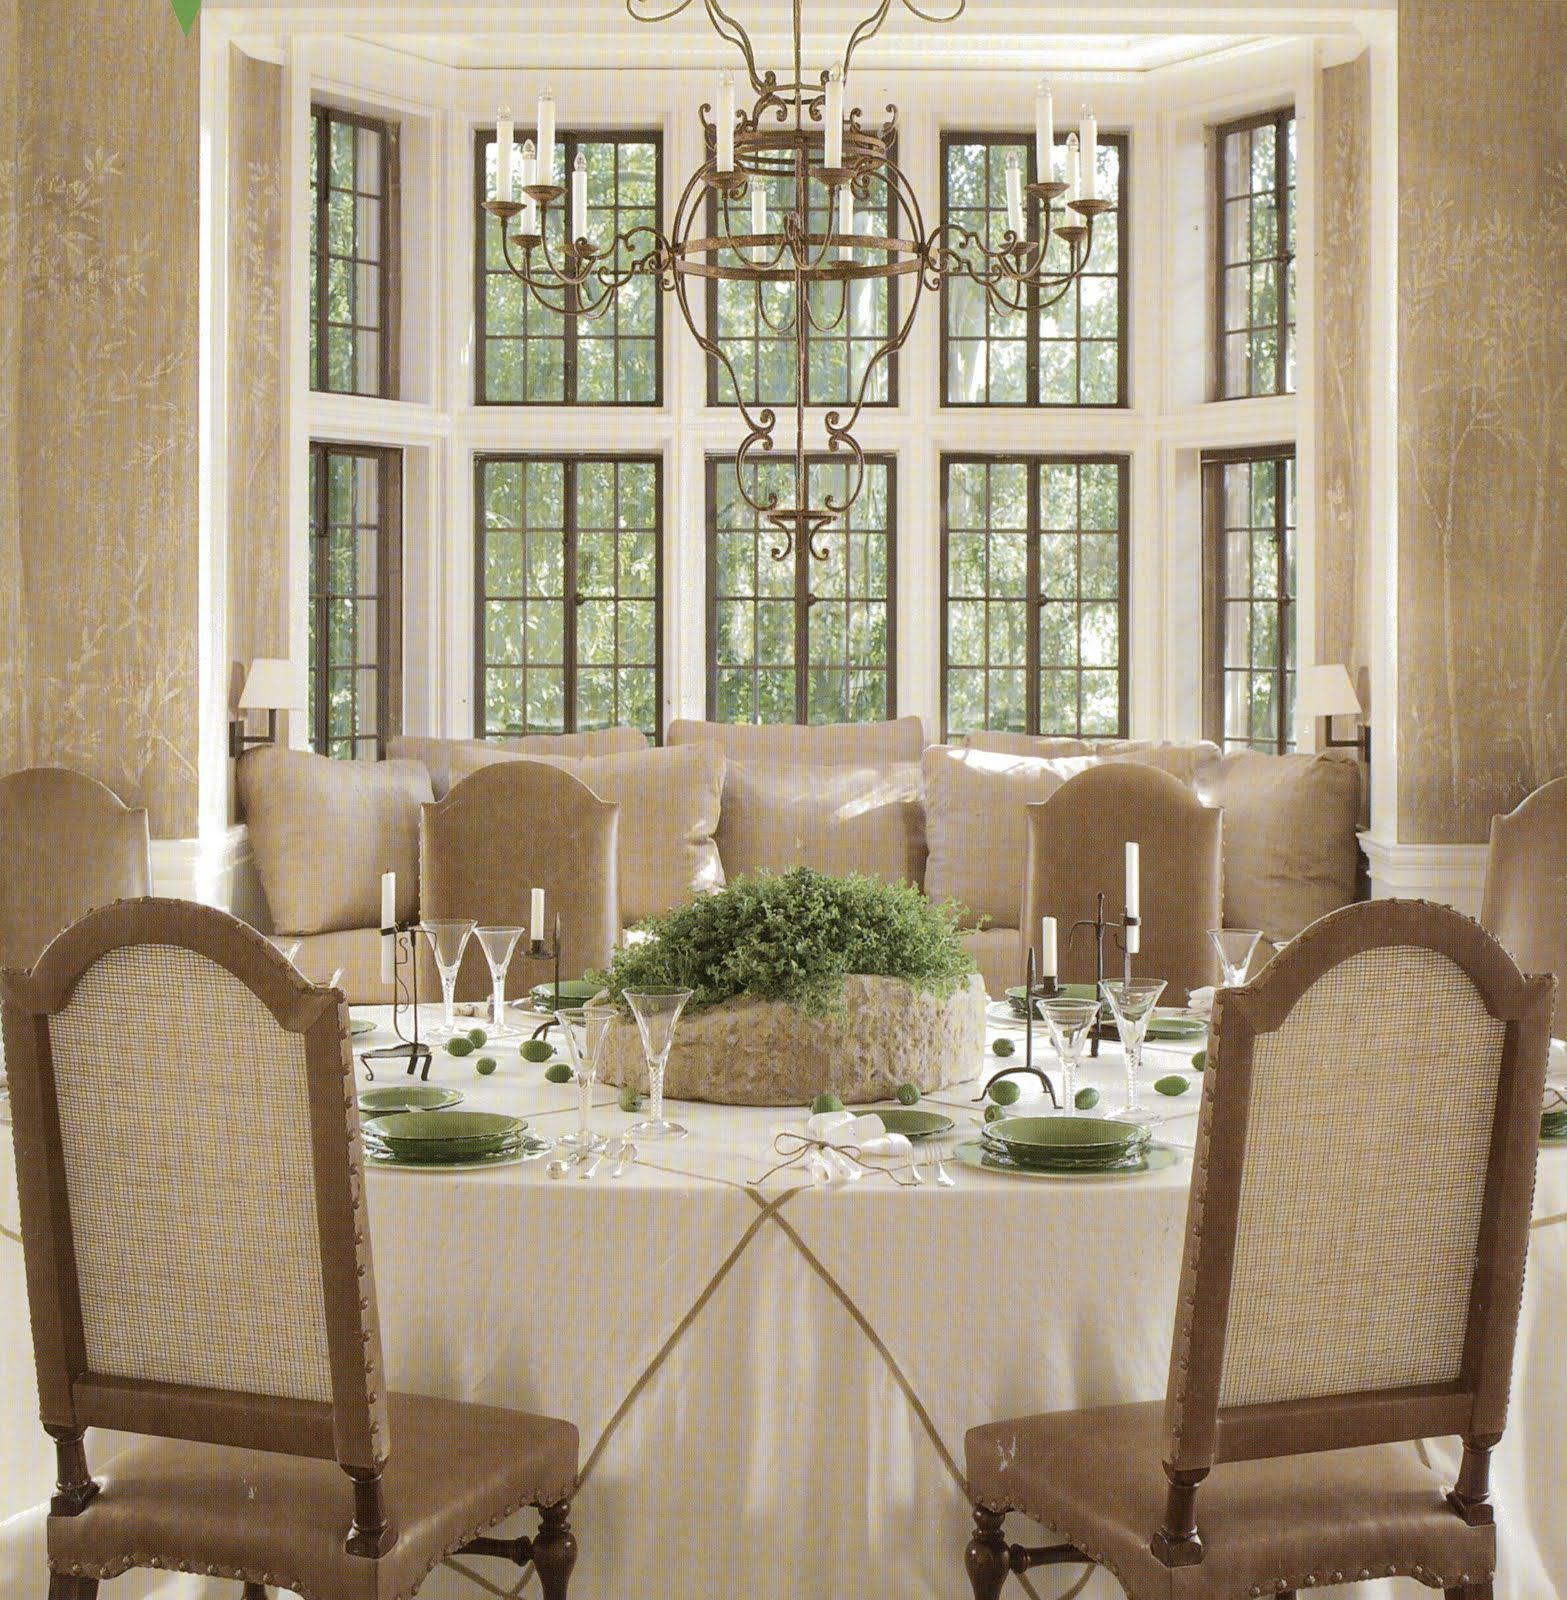 Bay Window Seats Windows Dining Room The Kitchen Seat Cushions Wall Of Bench Nook